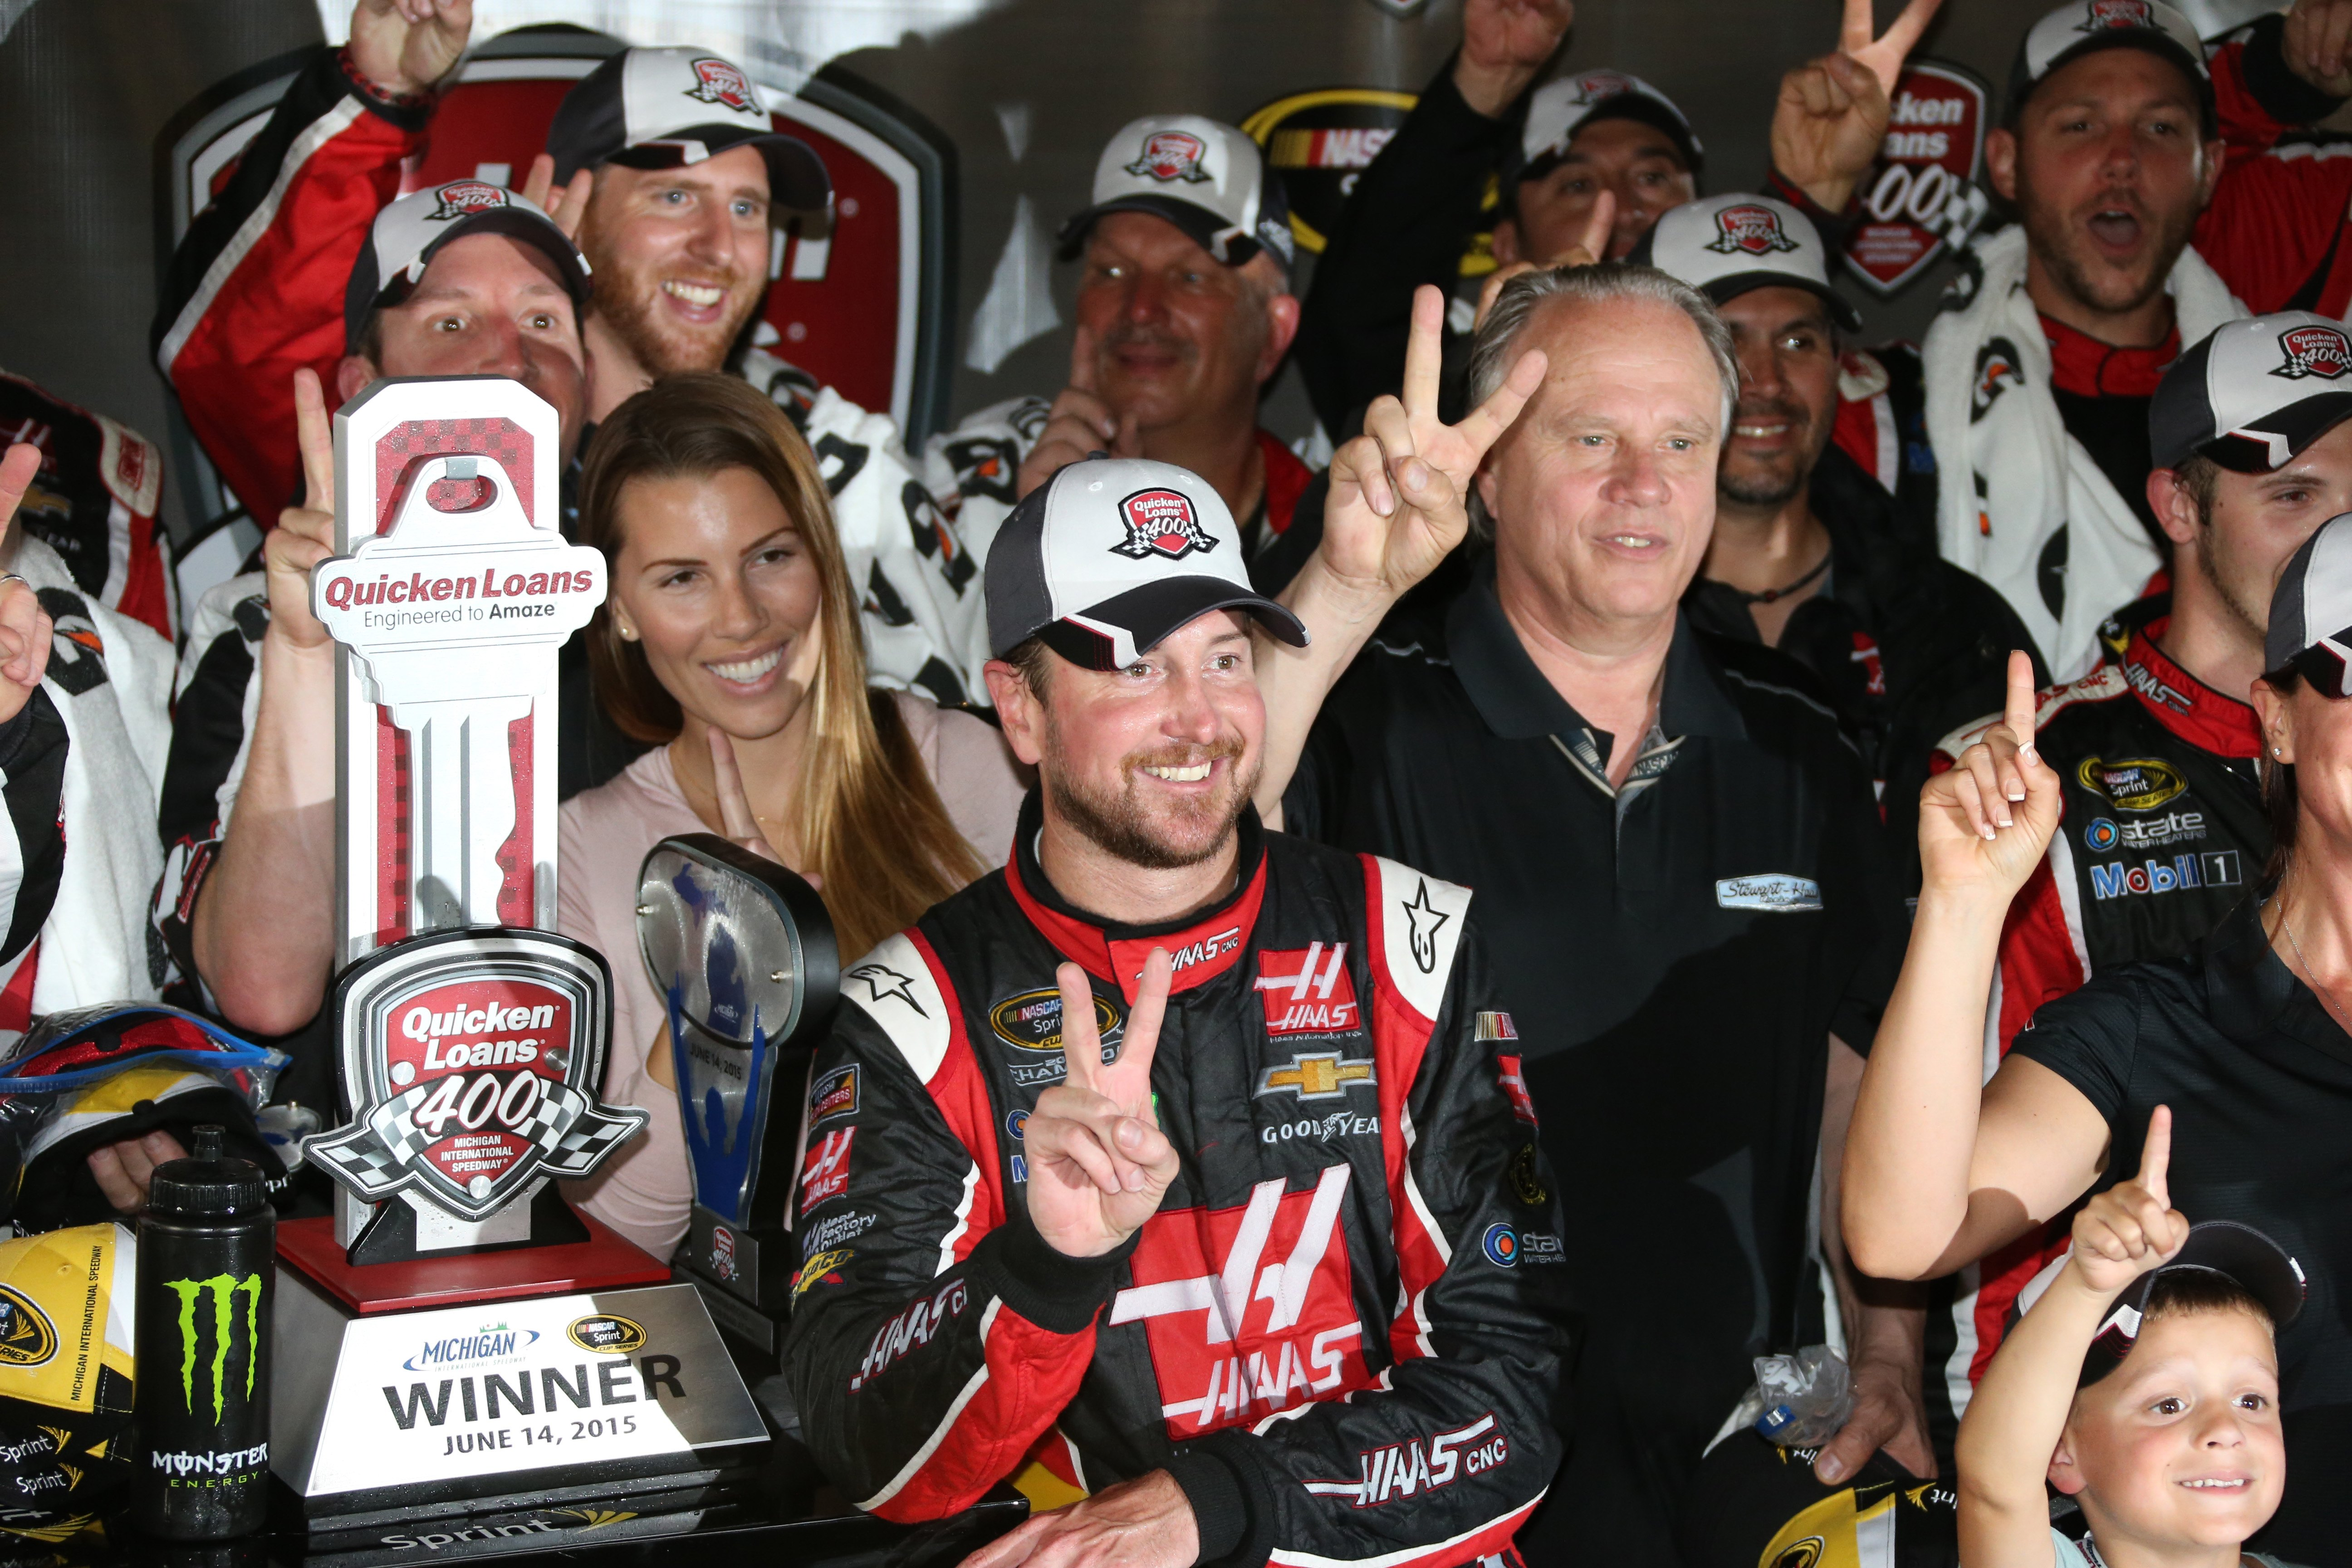 Kurt Busch celebrates in the winner's circle after the NASCAR Sprint Cup series auto race at Michigan International Speedway, Sunday, June 14, 2015, in Brooklyn, Mich. (AP Photo/Bob Brodbeck)